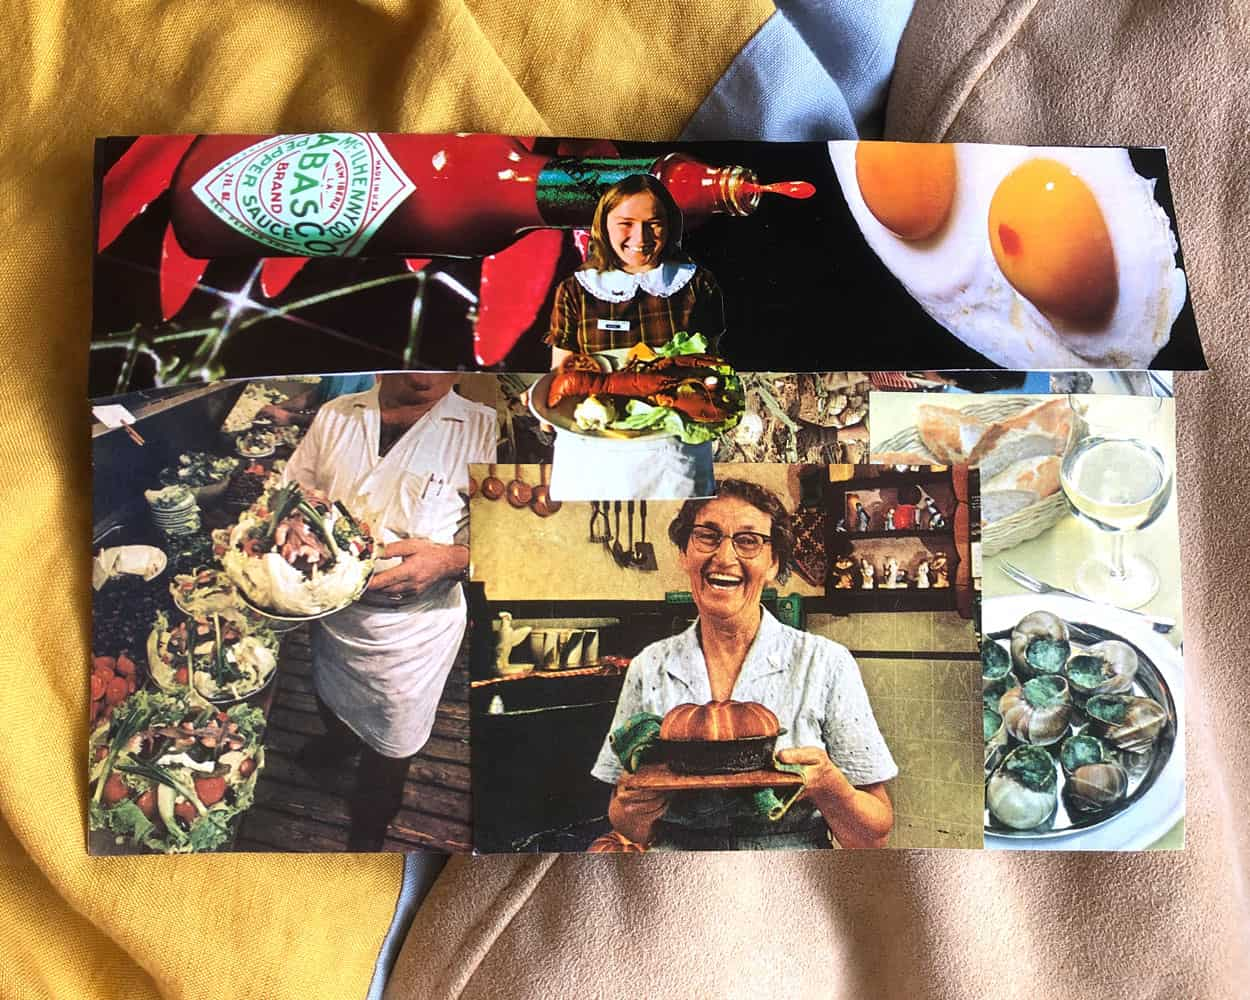 A collage of food, covers an envelope. Three people carry food. Some of the dishes are lobster, cake, and escargot.